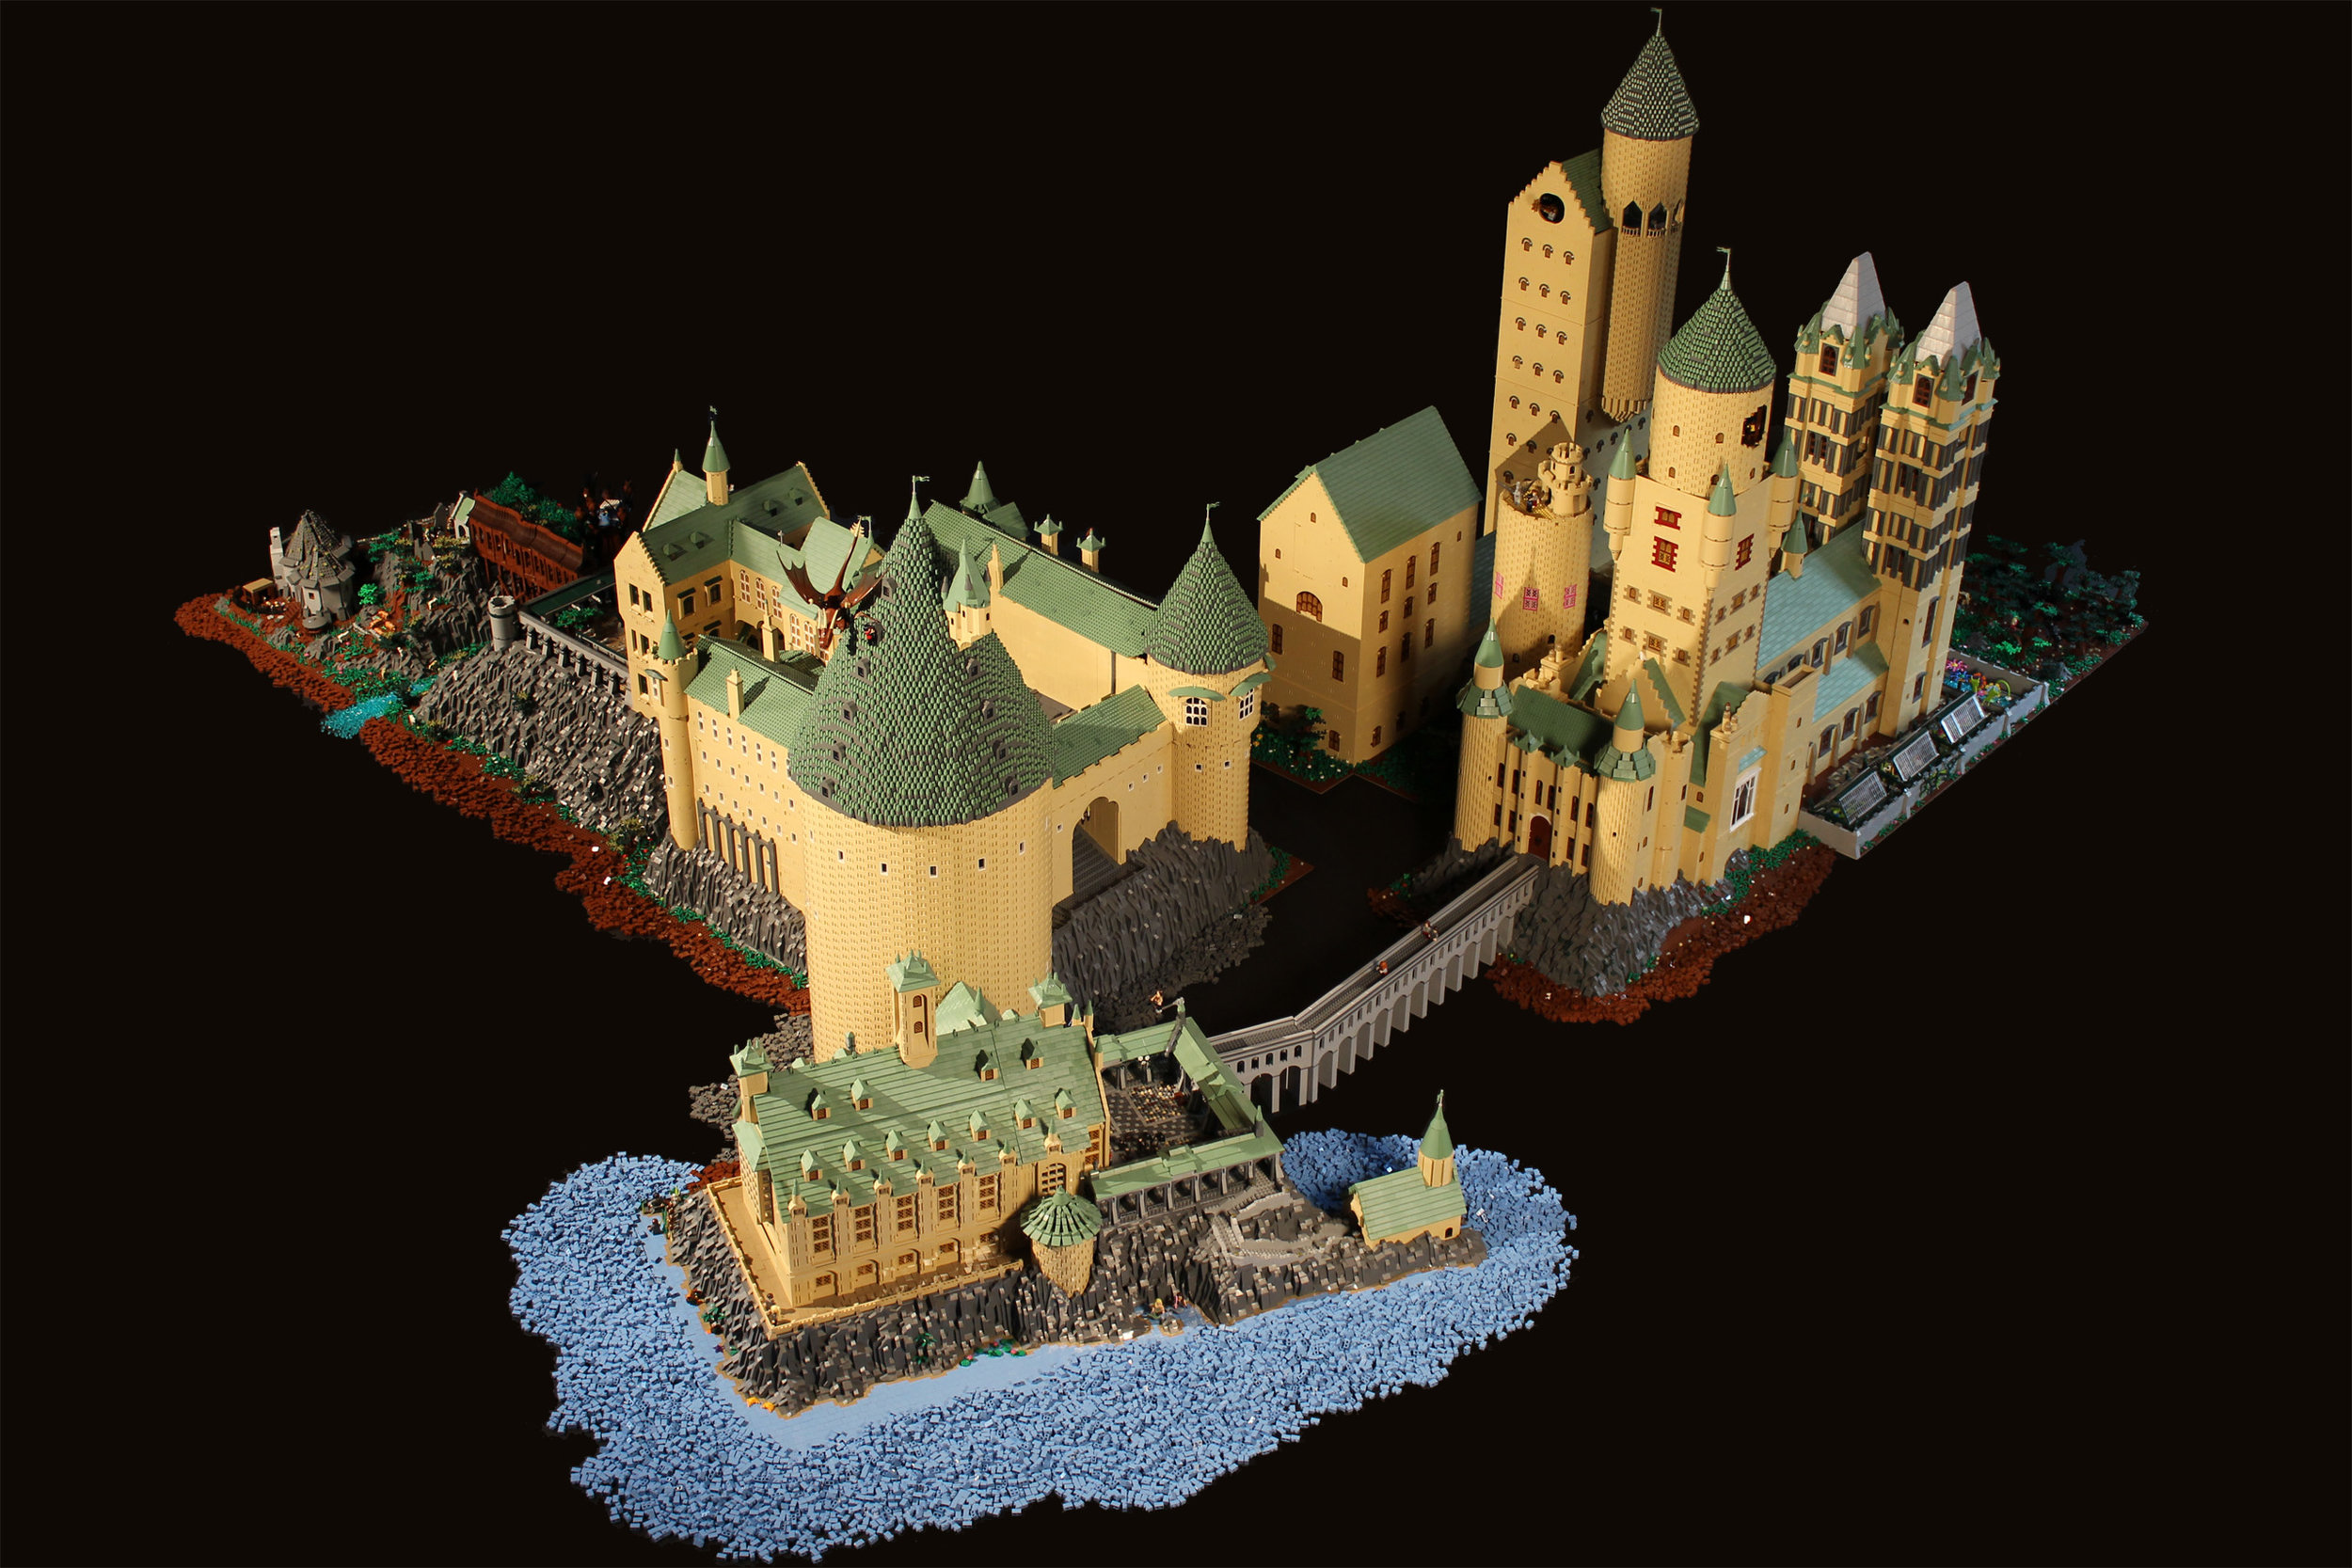 Hogwarts Castle Bippity Bricks Brick Art And Architecture Travelers can only get inside neuschwanstein castle on a guided tour, which is included in the price of admission. hogwarts castle bippity bricks